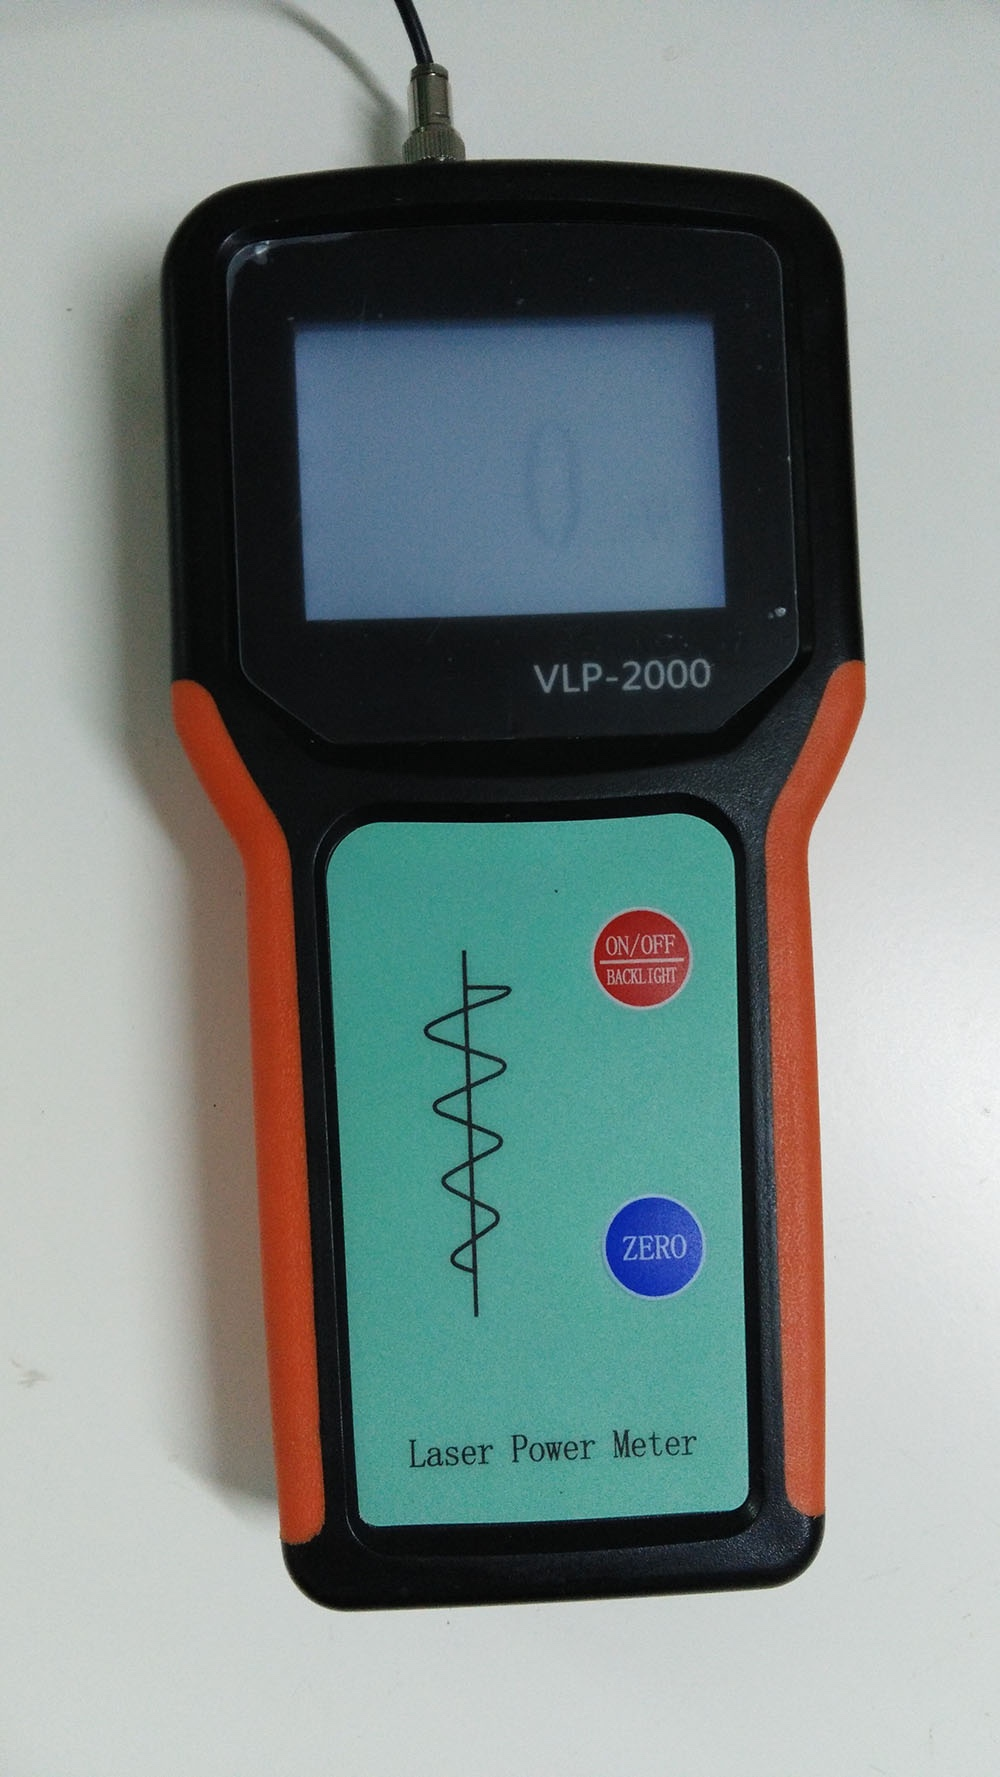 Laser Power Meter : Vlp laser power meter for w and nm cw